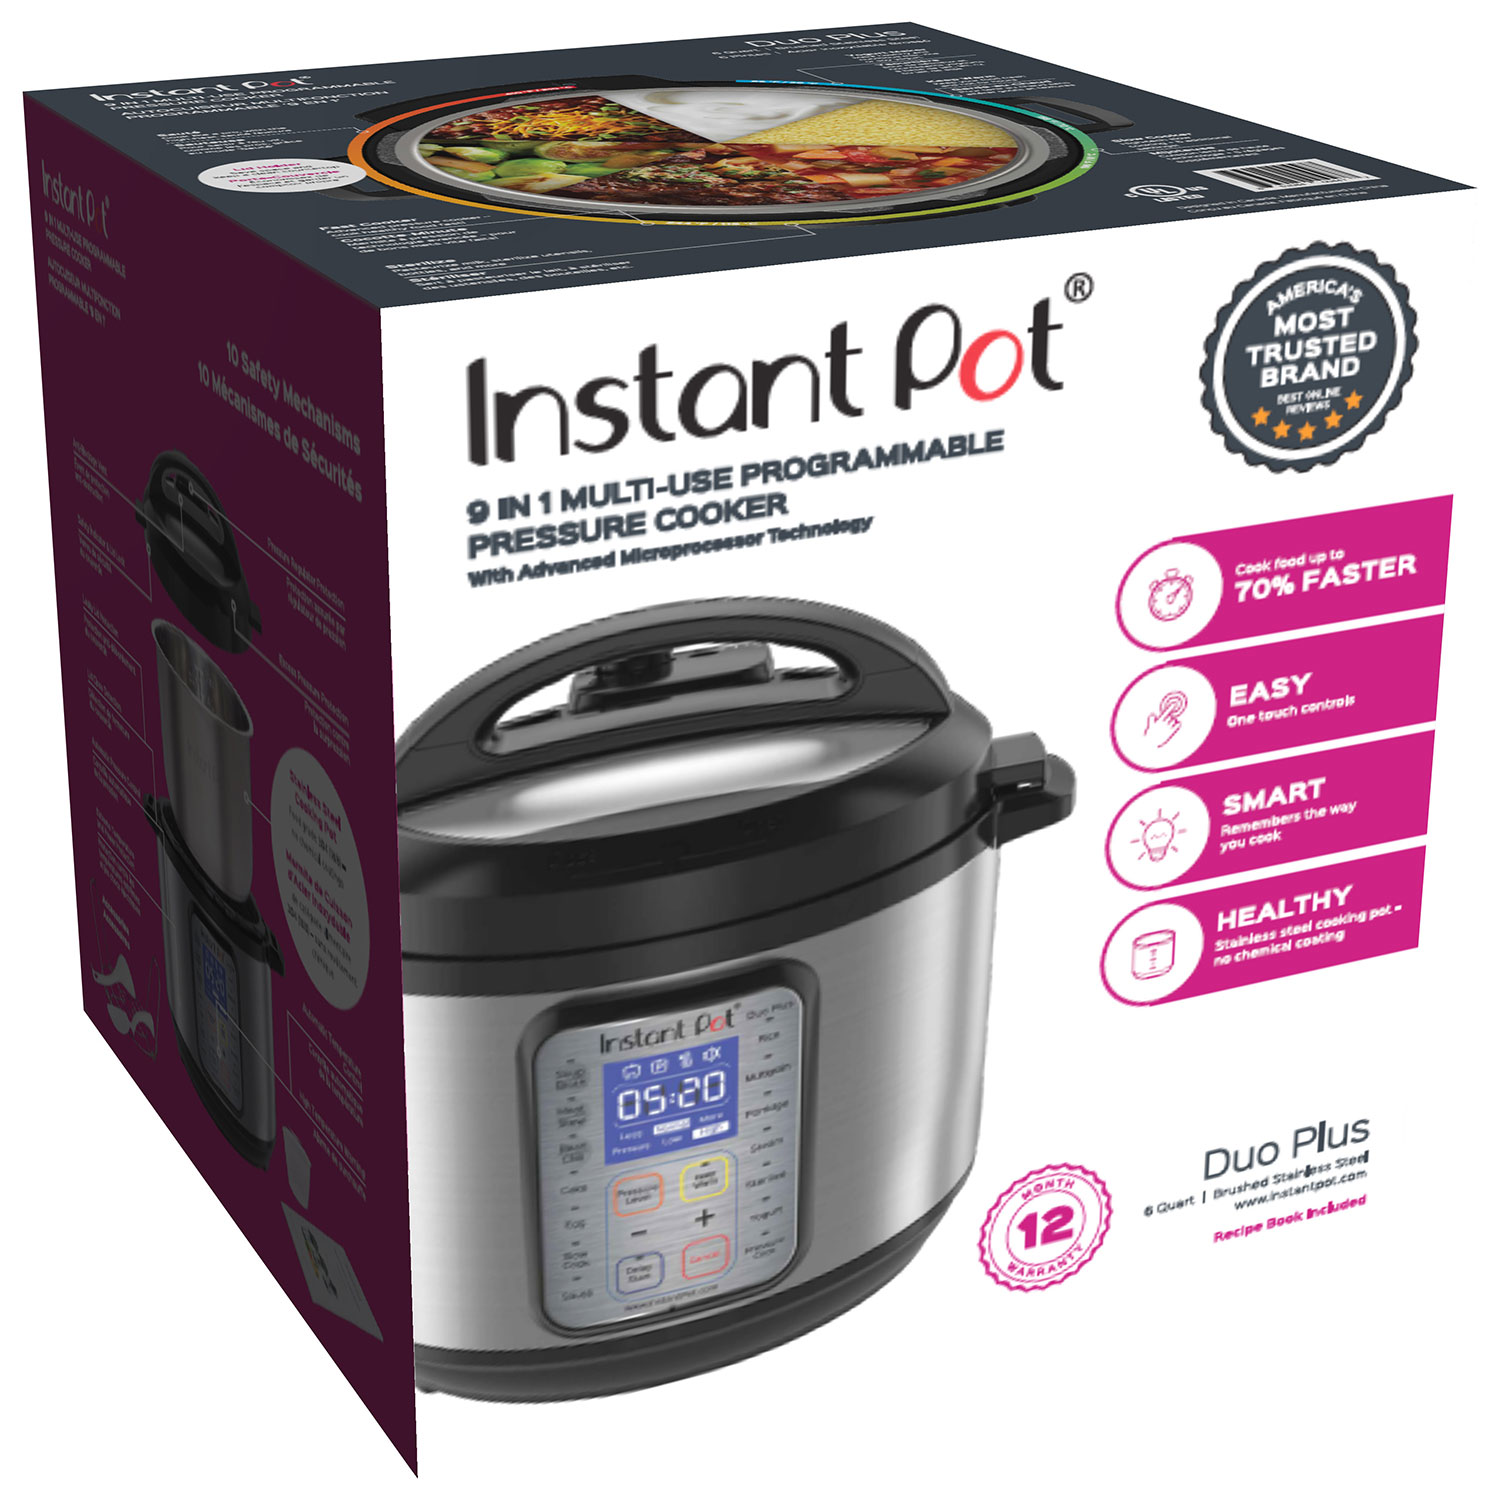 Instant Pot DUO Plus 6 Qt 9 in 1 Multi Use Programmable Pressure Cooker Slow